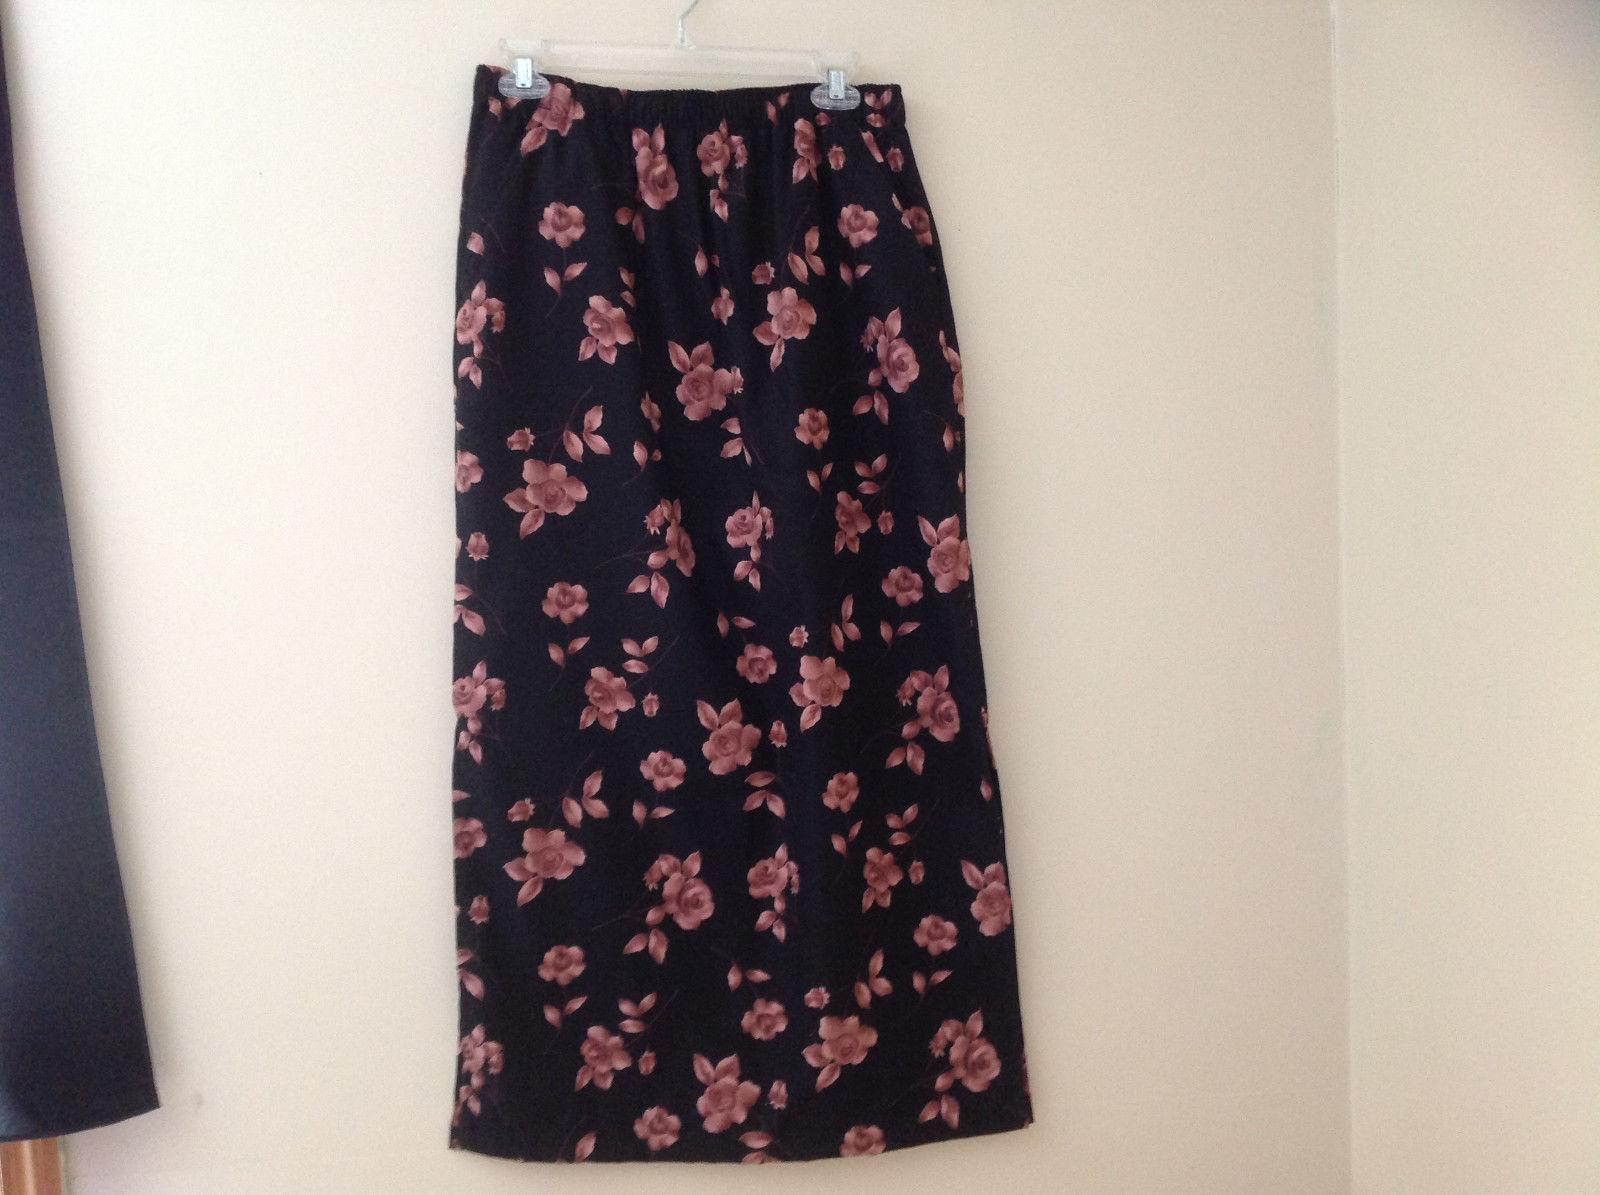 Erika Studio Black Mauve Flower Patterned Ankle Length Skirt Pockets Size M